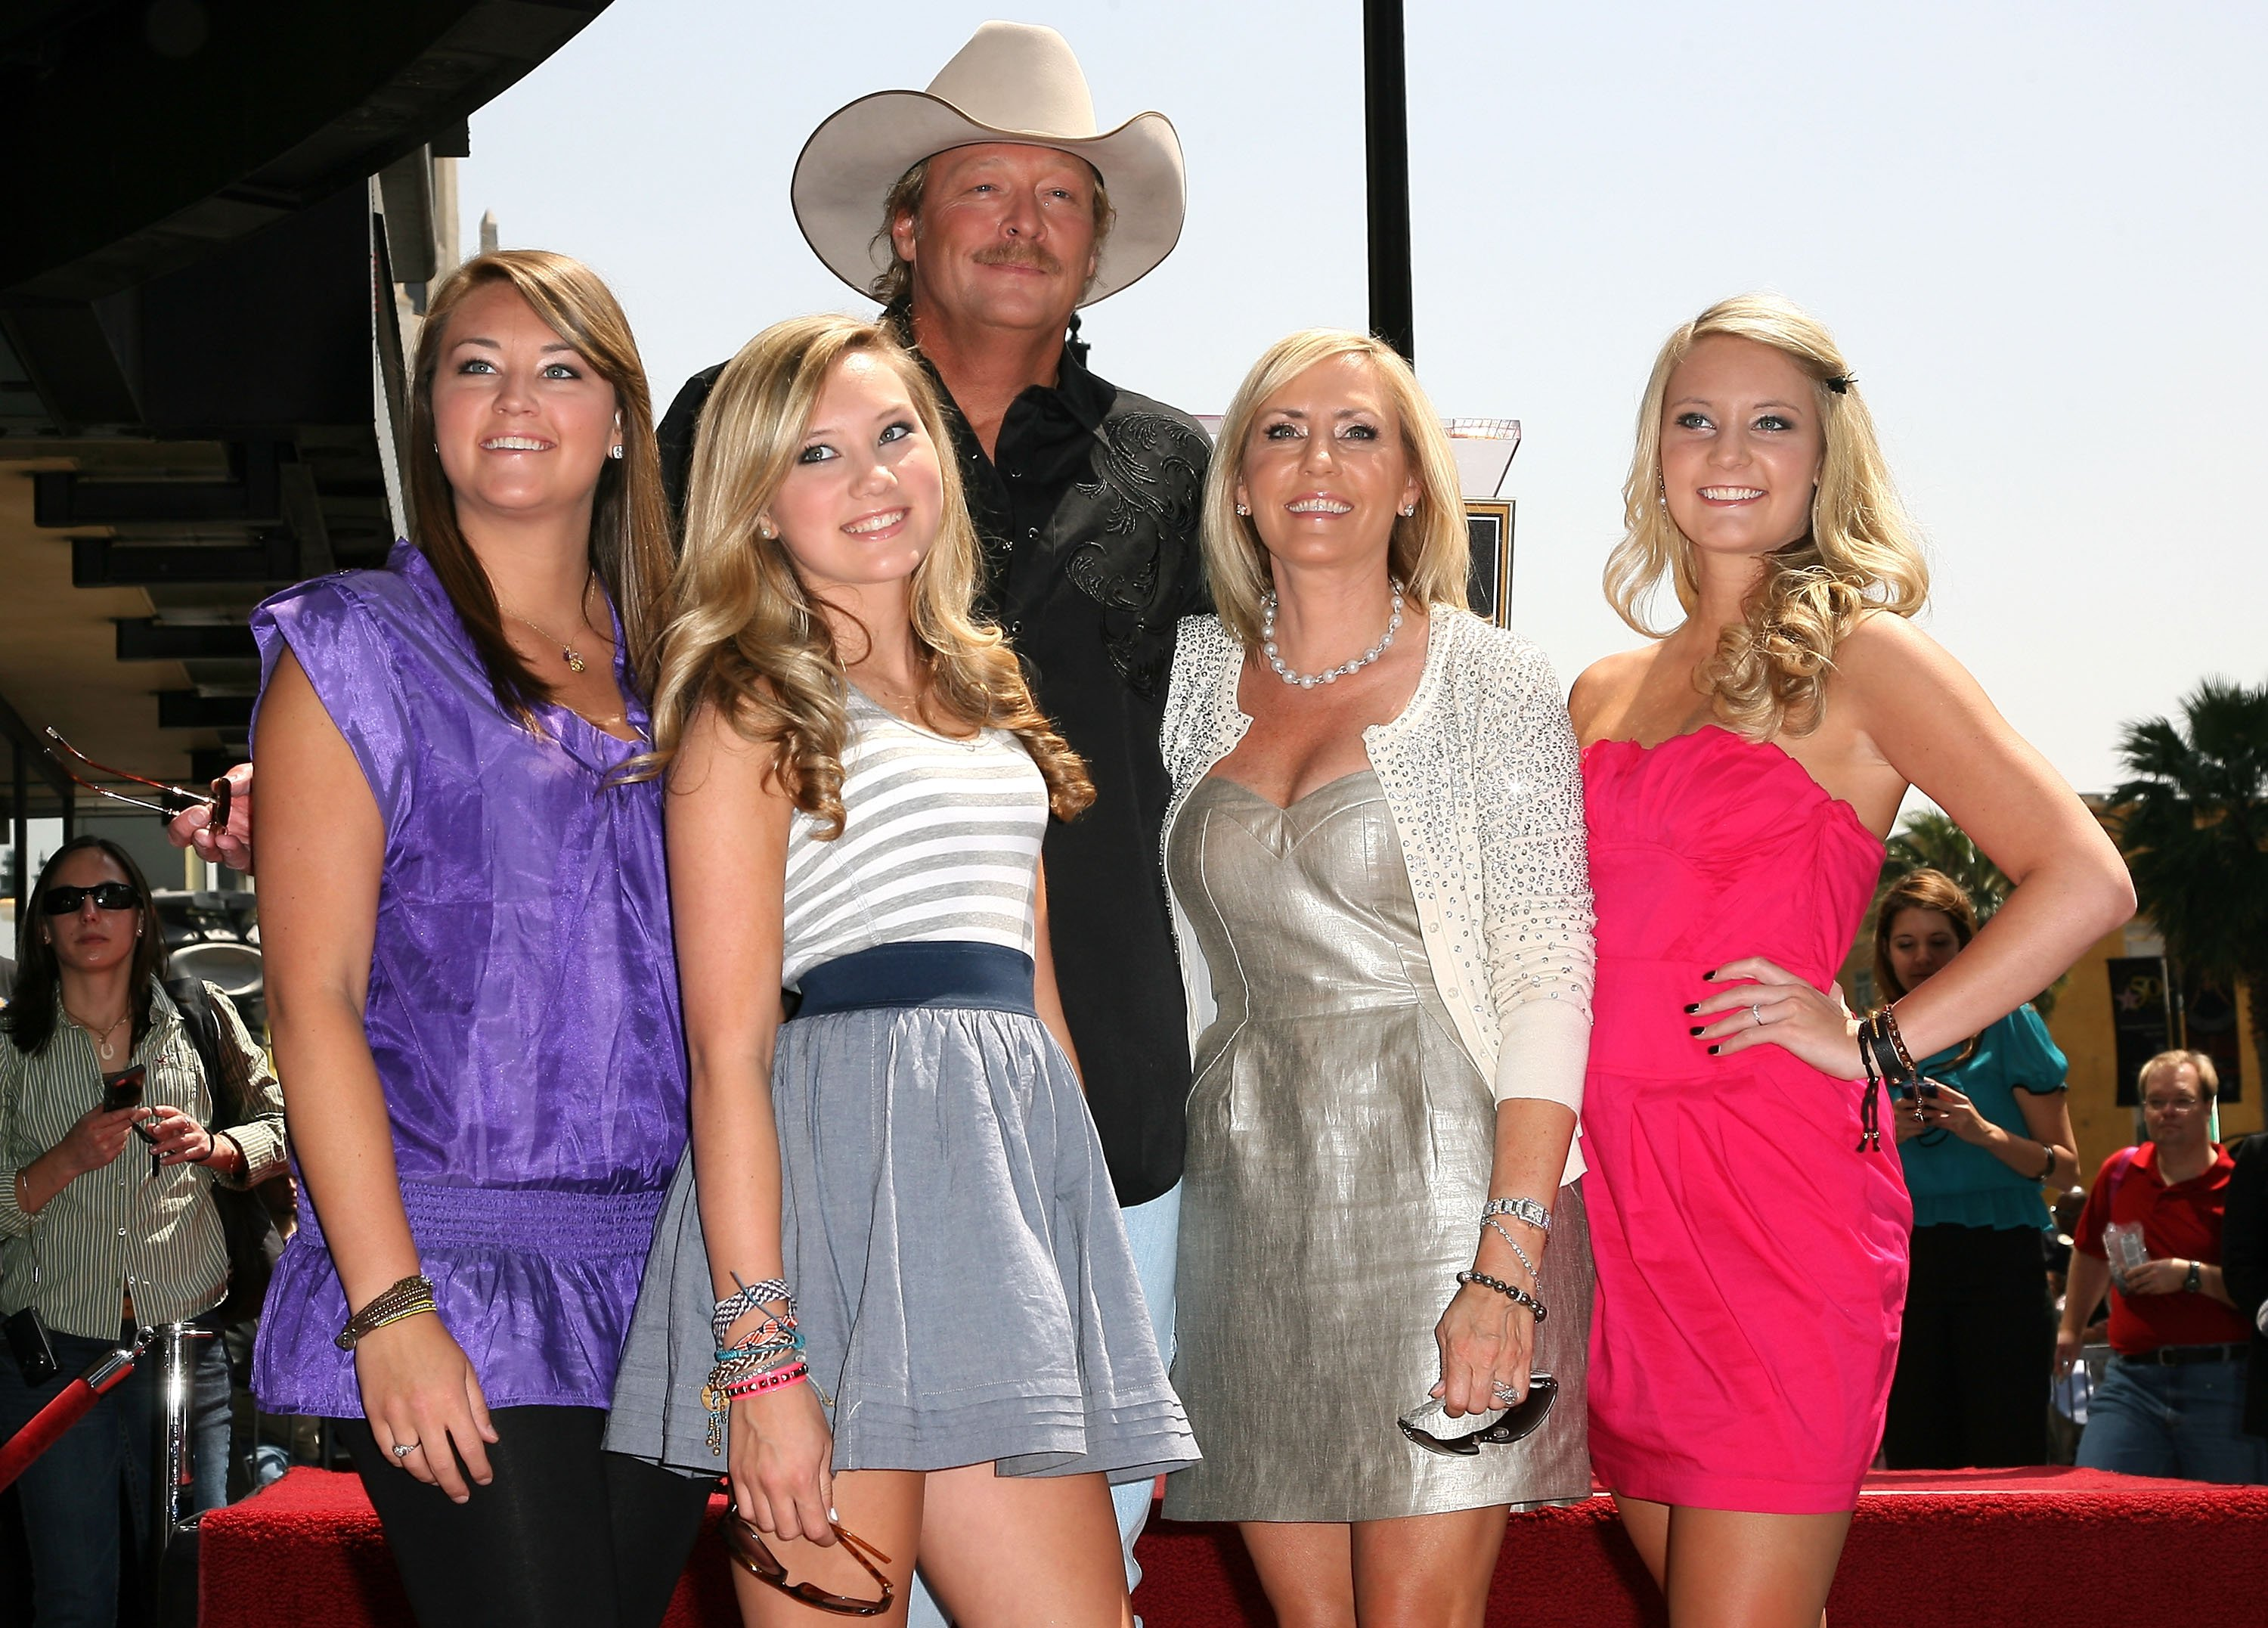 Alan Jackson, his wife Denise, and daughter Mattie, Alexandra and Dani attend the Hollywood Walk of Fame for the country singer's induction | Photo: Getty Images